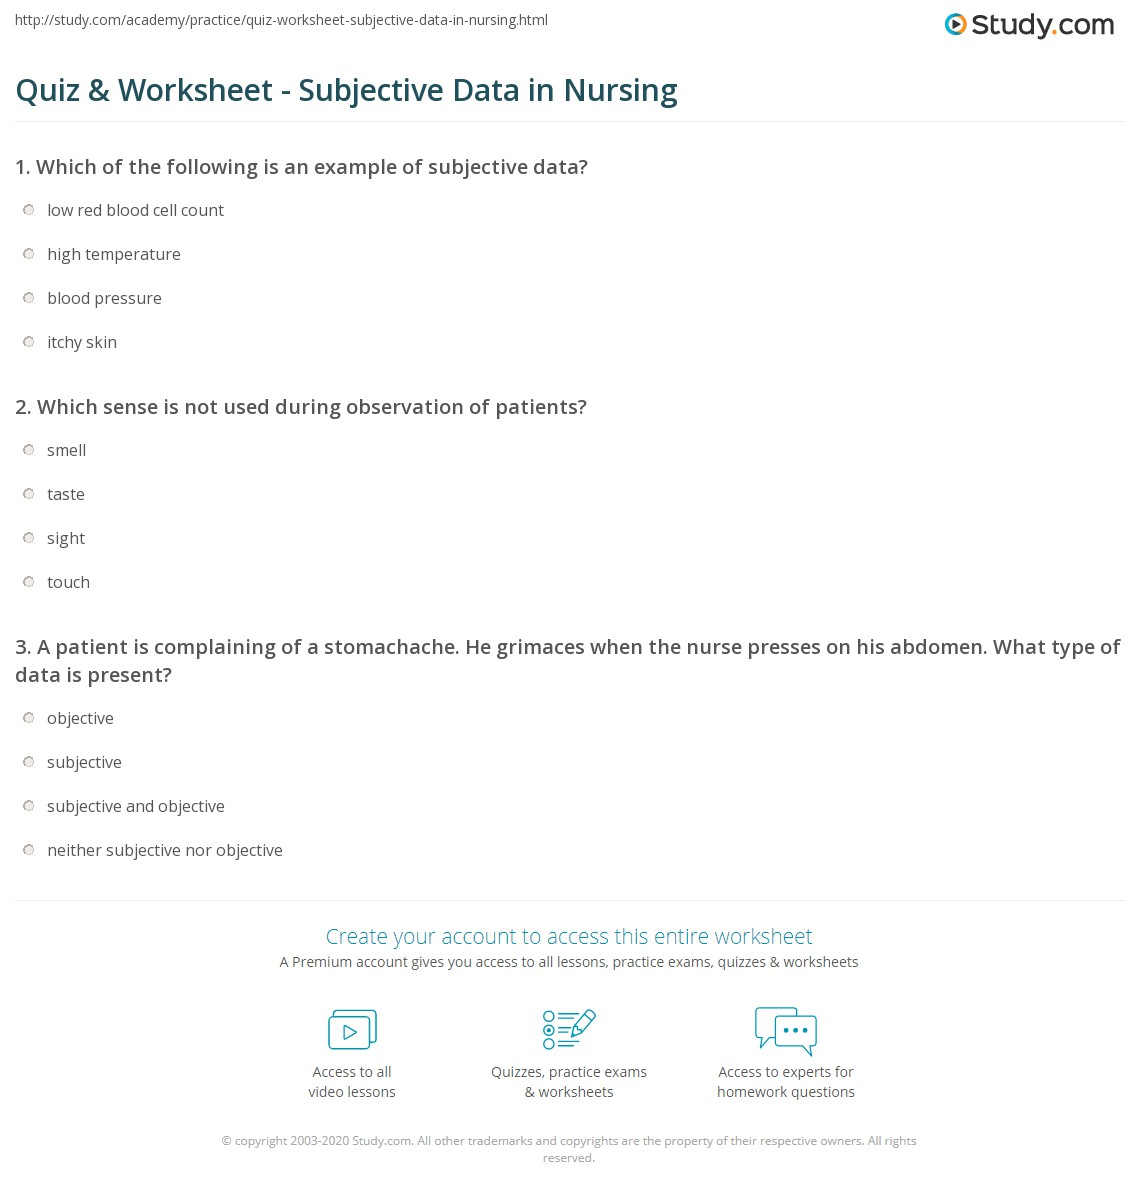 quiz worksheet subjective data in nursing. Black Bedroom Furniture Sets. Home Design Ideas